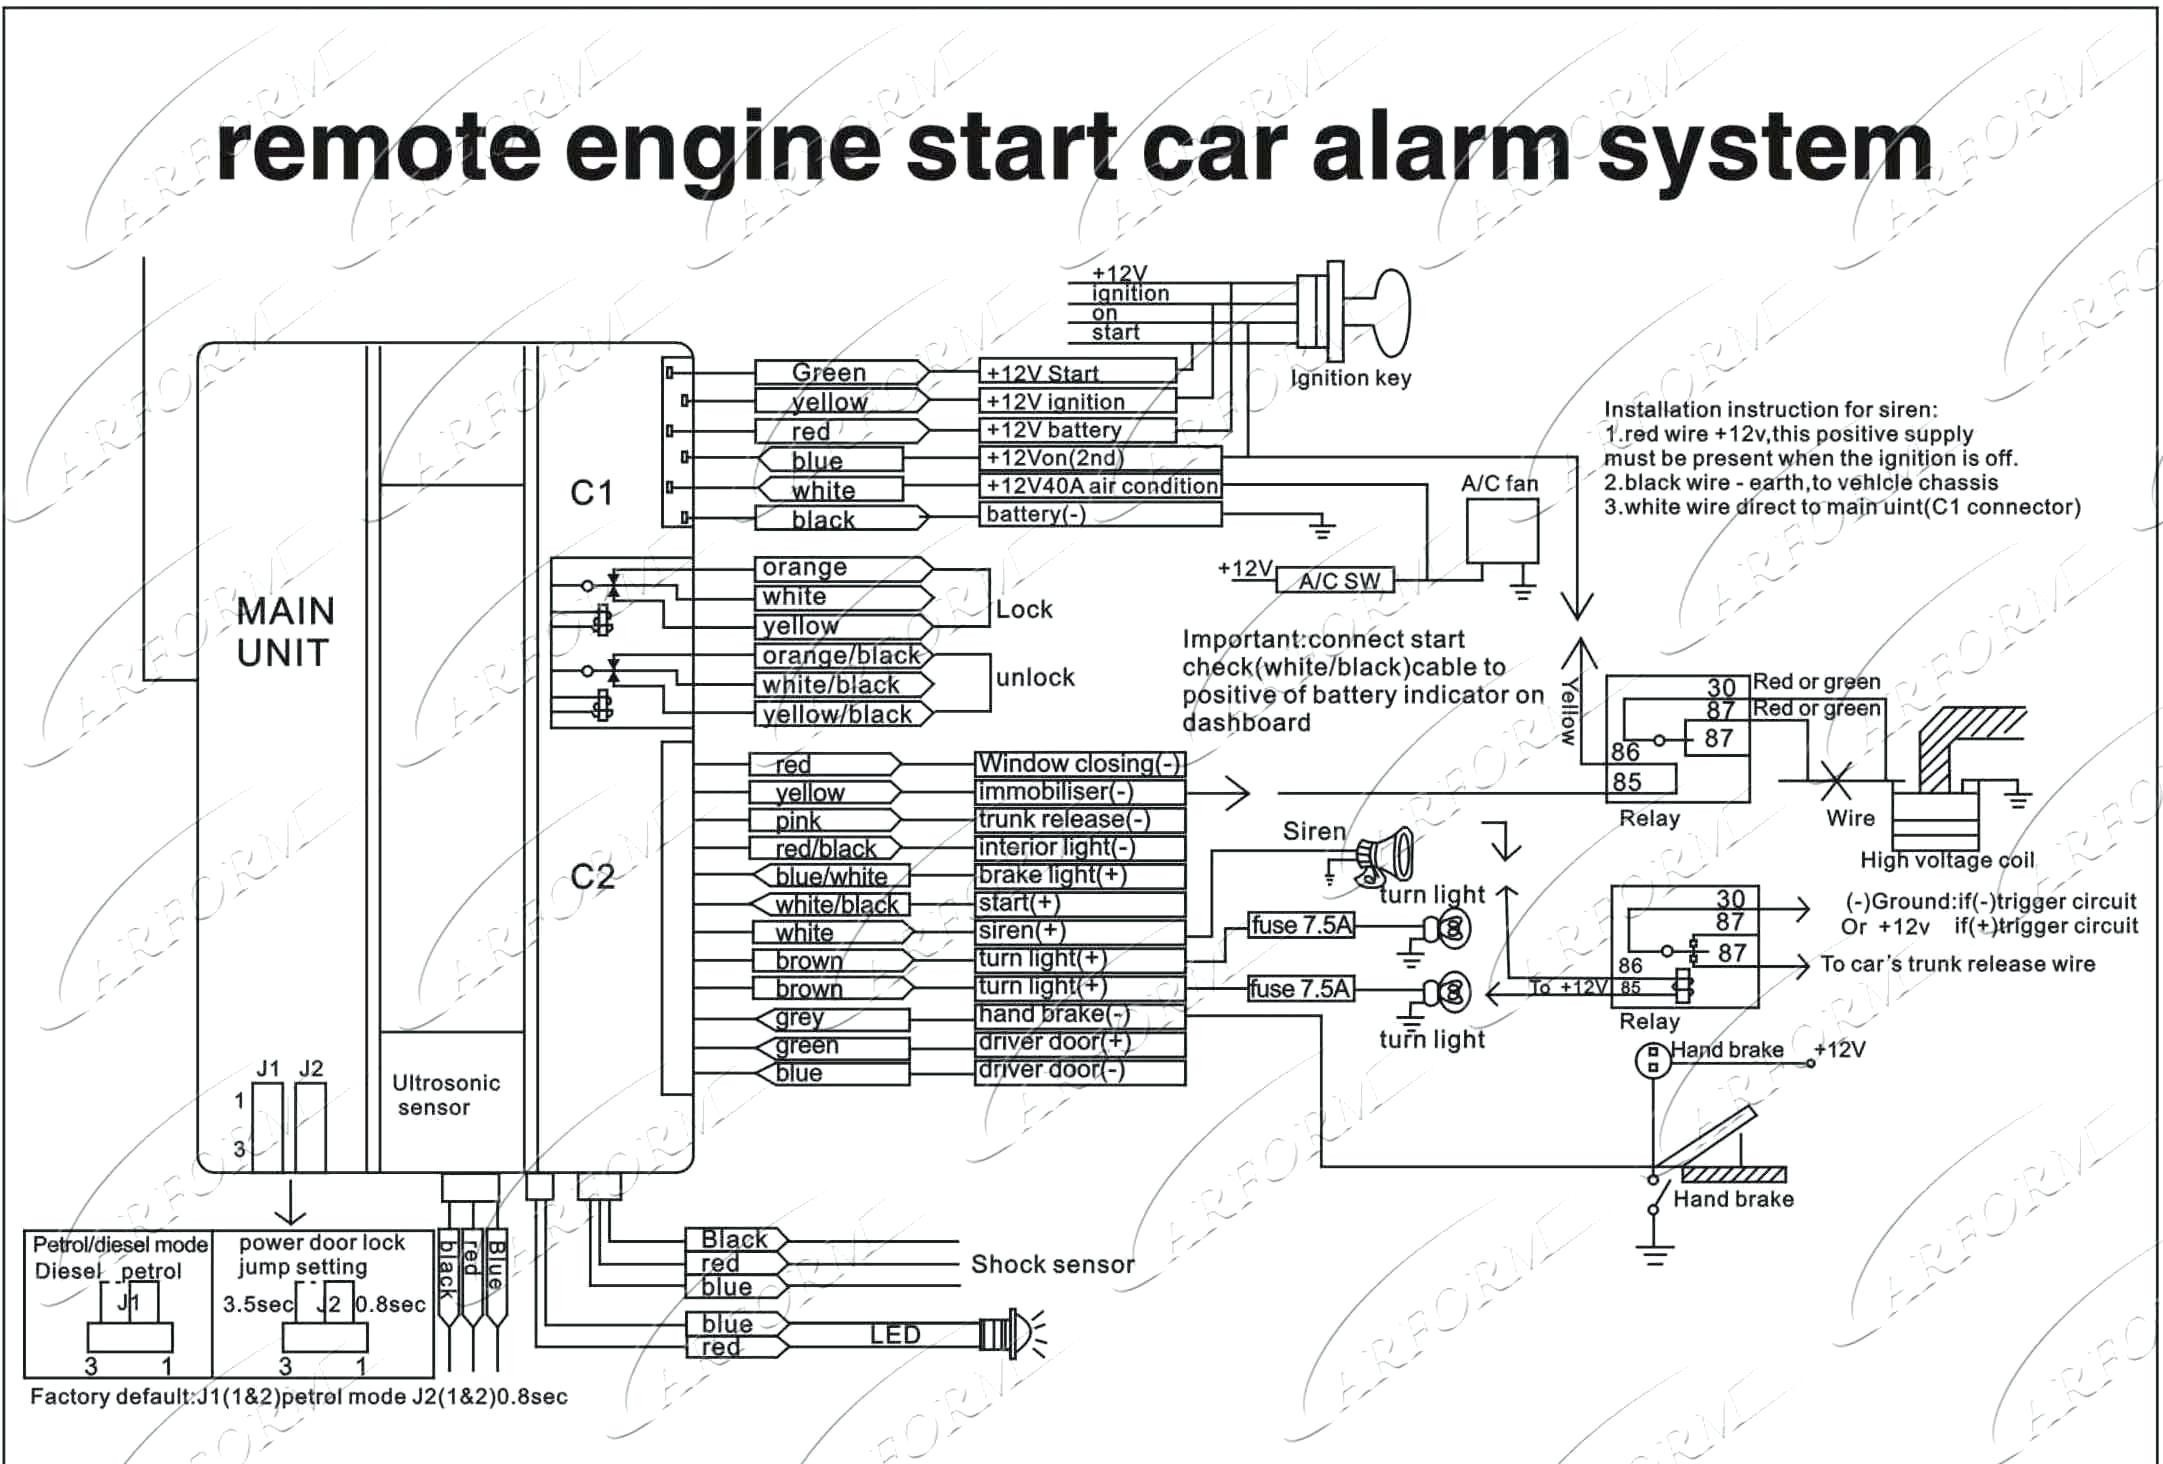 Bogen Paging System Wiring Diagram Wiring Diagram Vehicle Security System Refrence Home Security System Of Bogen Paging System Wiring Diagram